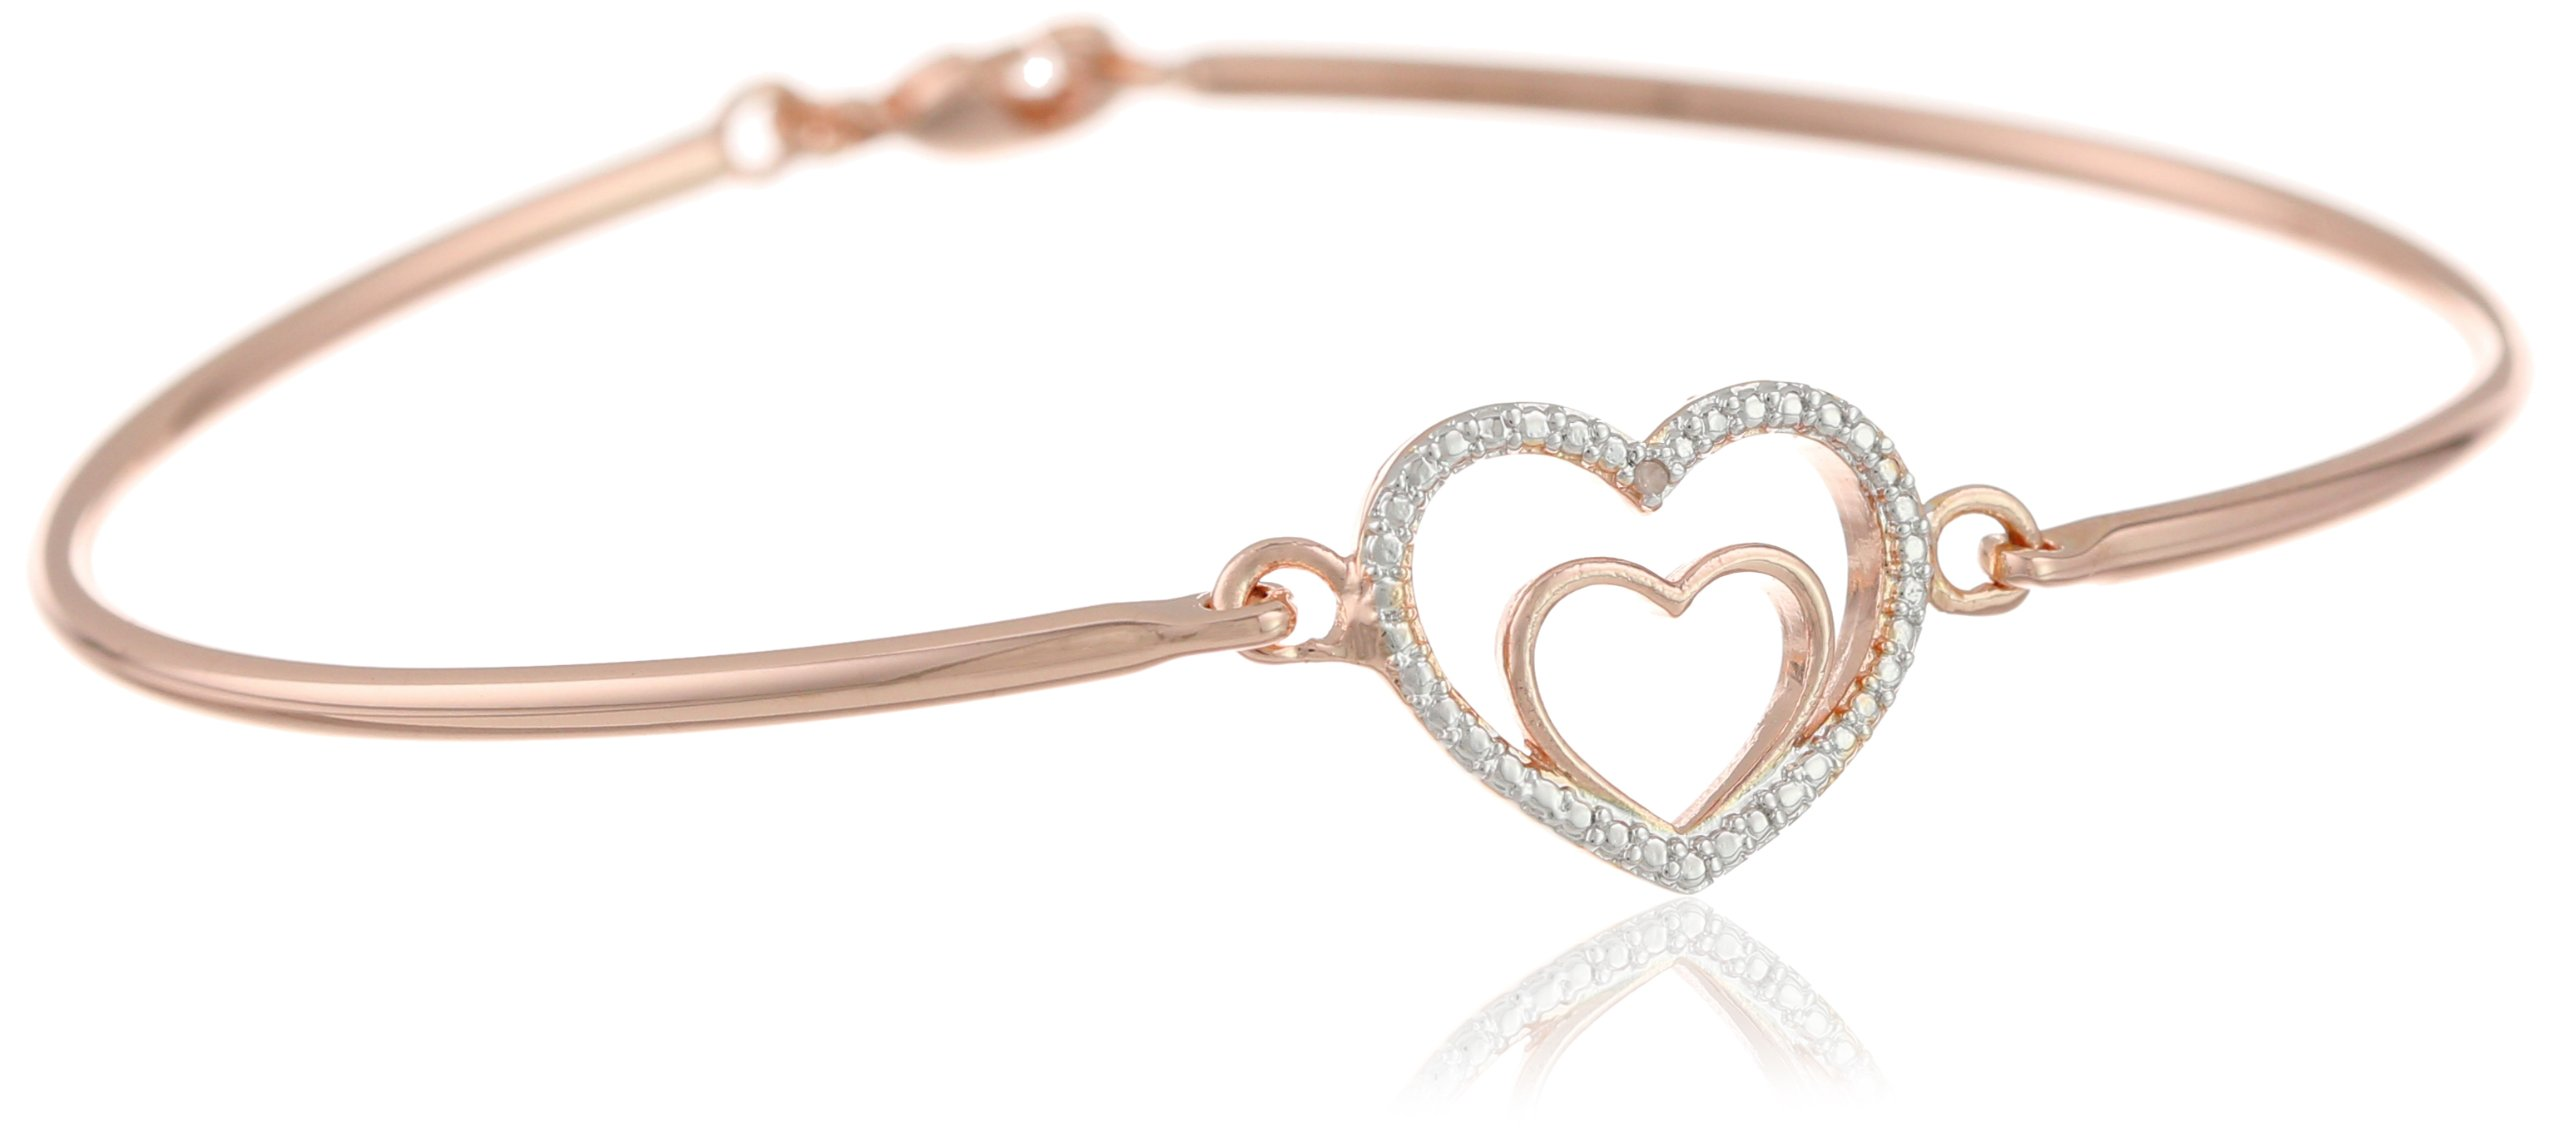 """White, Yellow and Rose Gold Plated Bangle Bracelet, 7.25"""""""